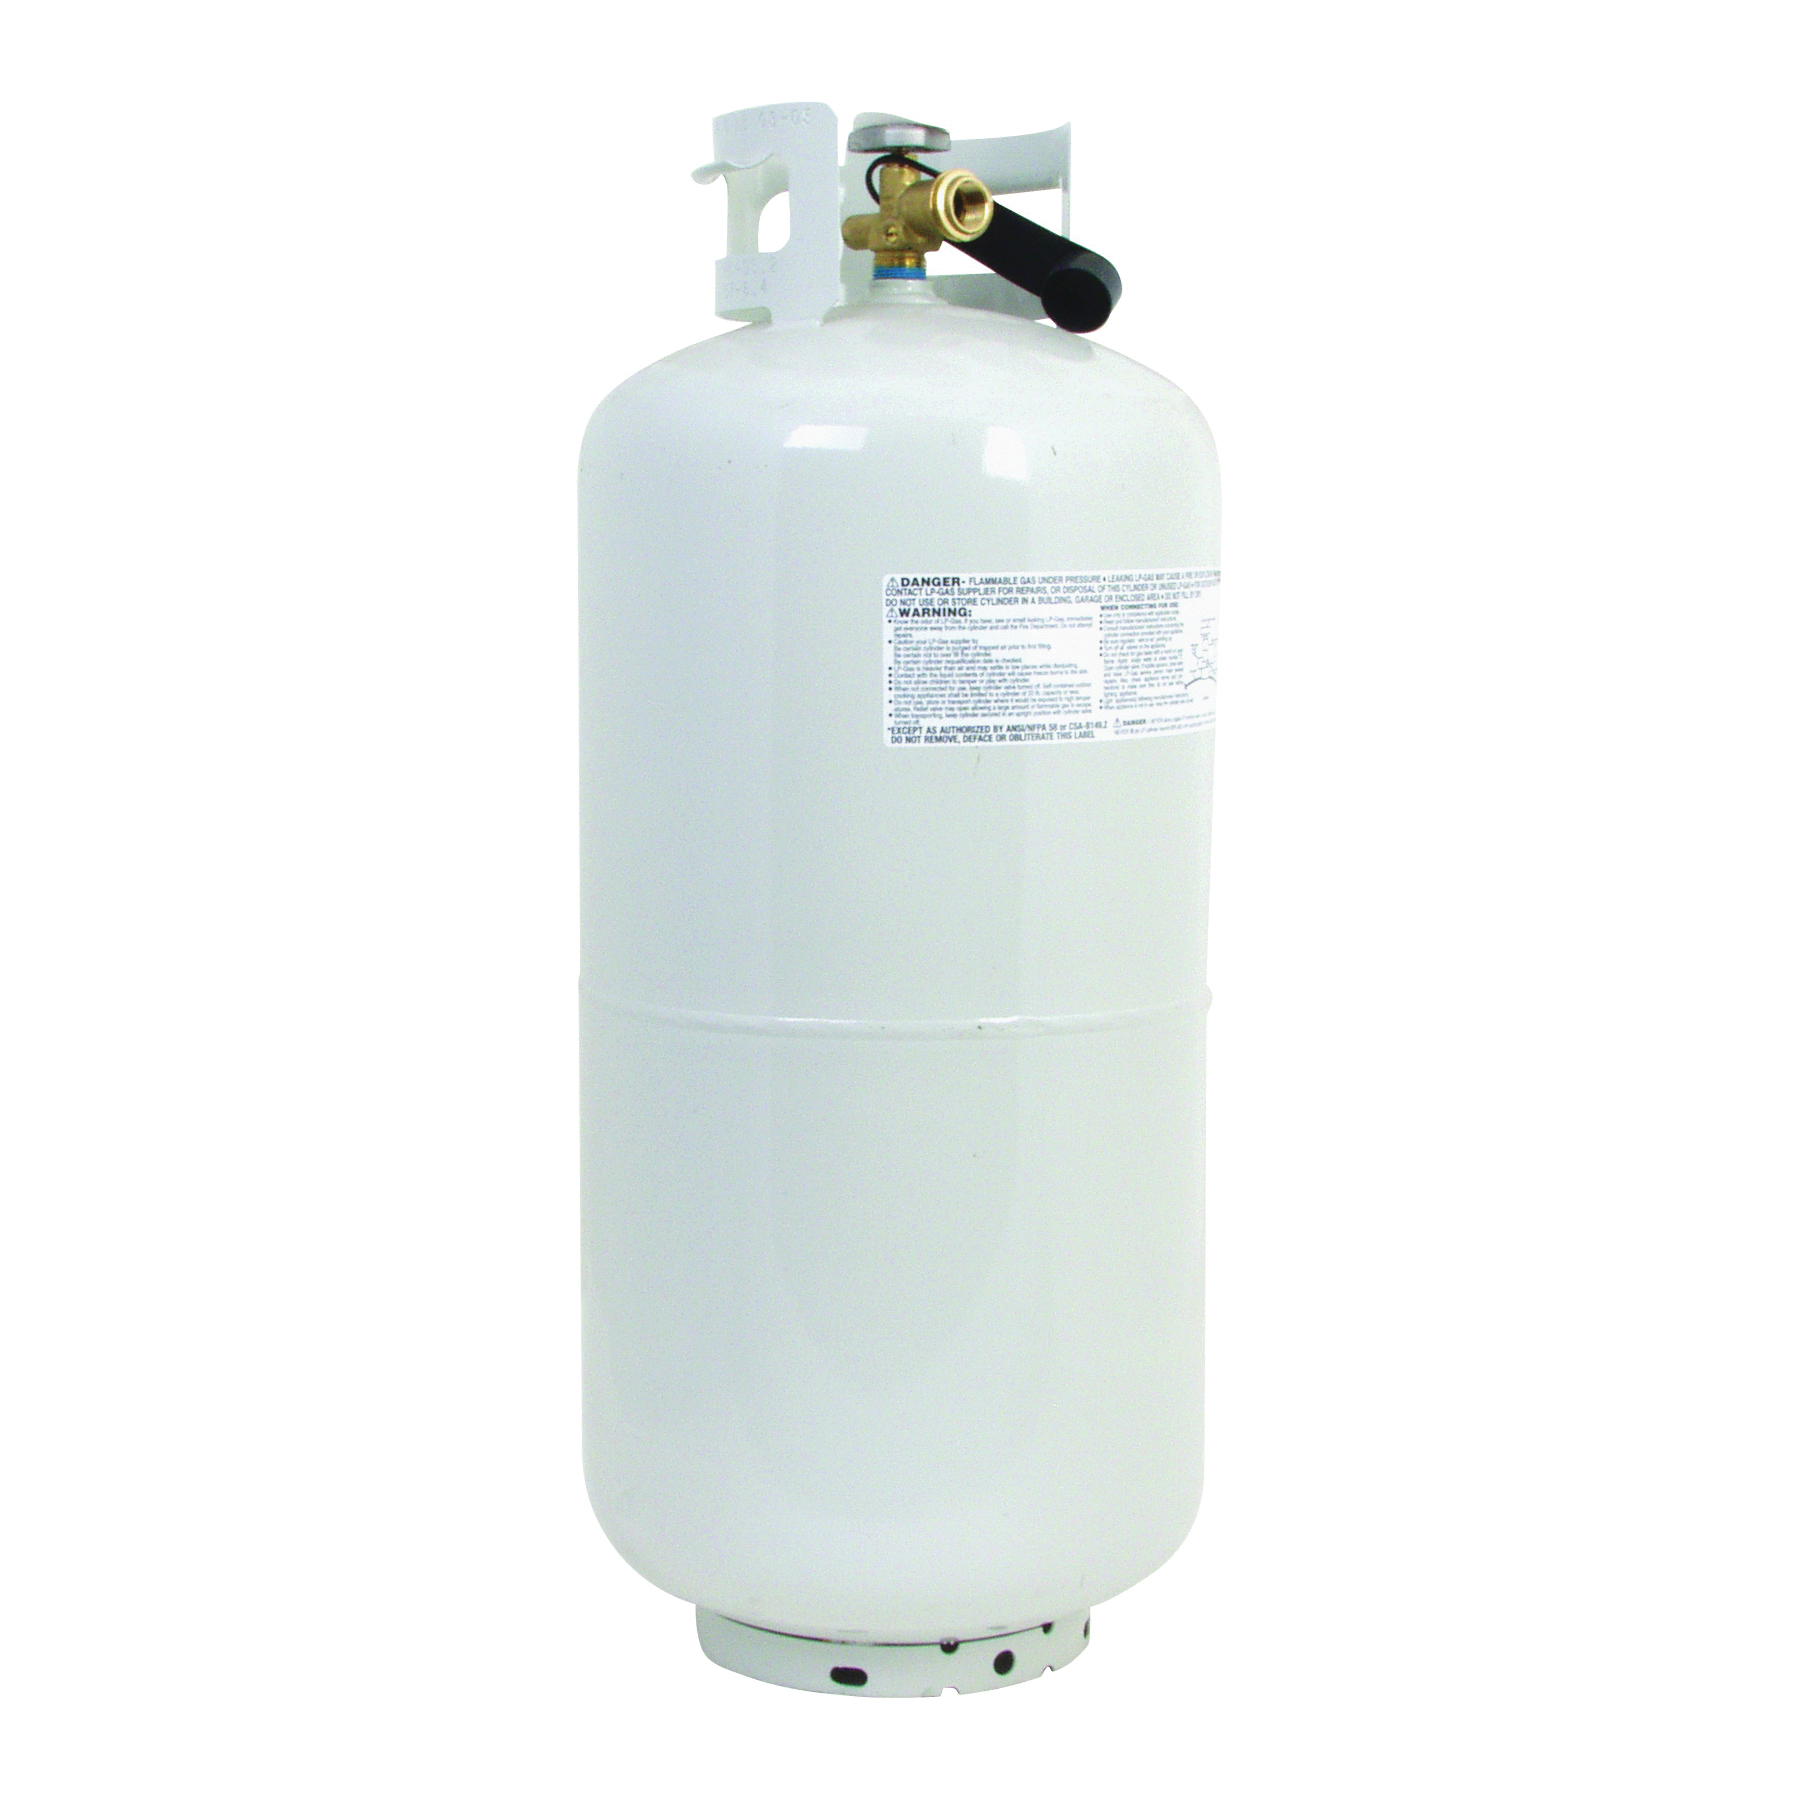 Picture of Worthington 302018 Propane Gas Cylinder, 9.4 gal Tank, Steel